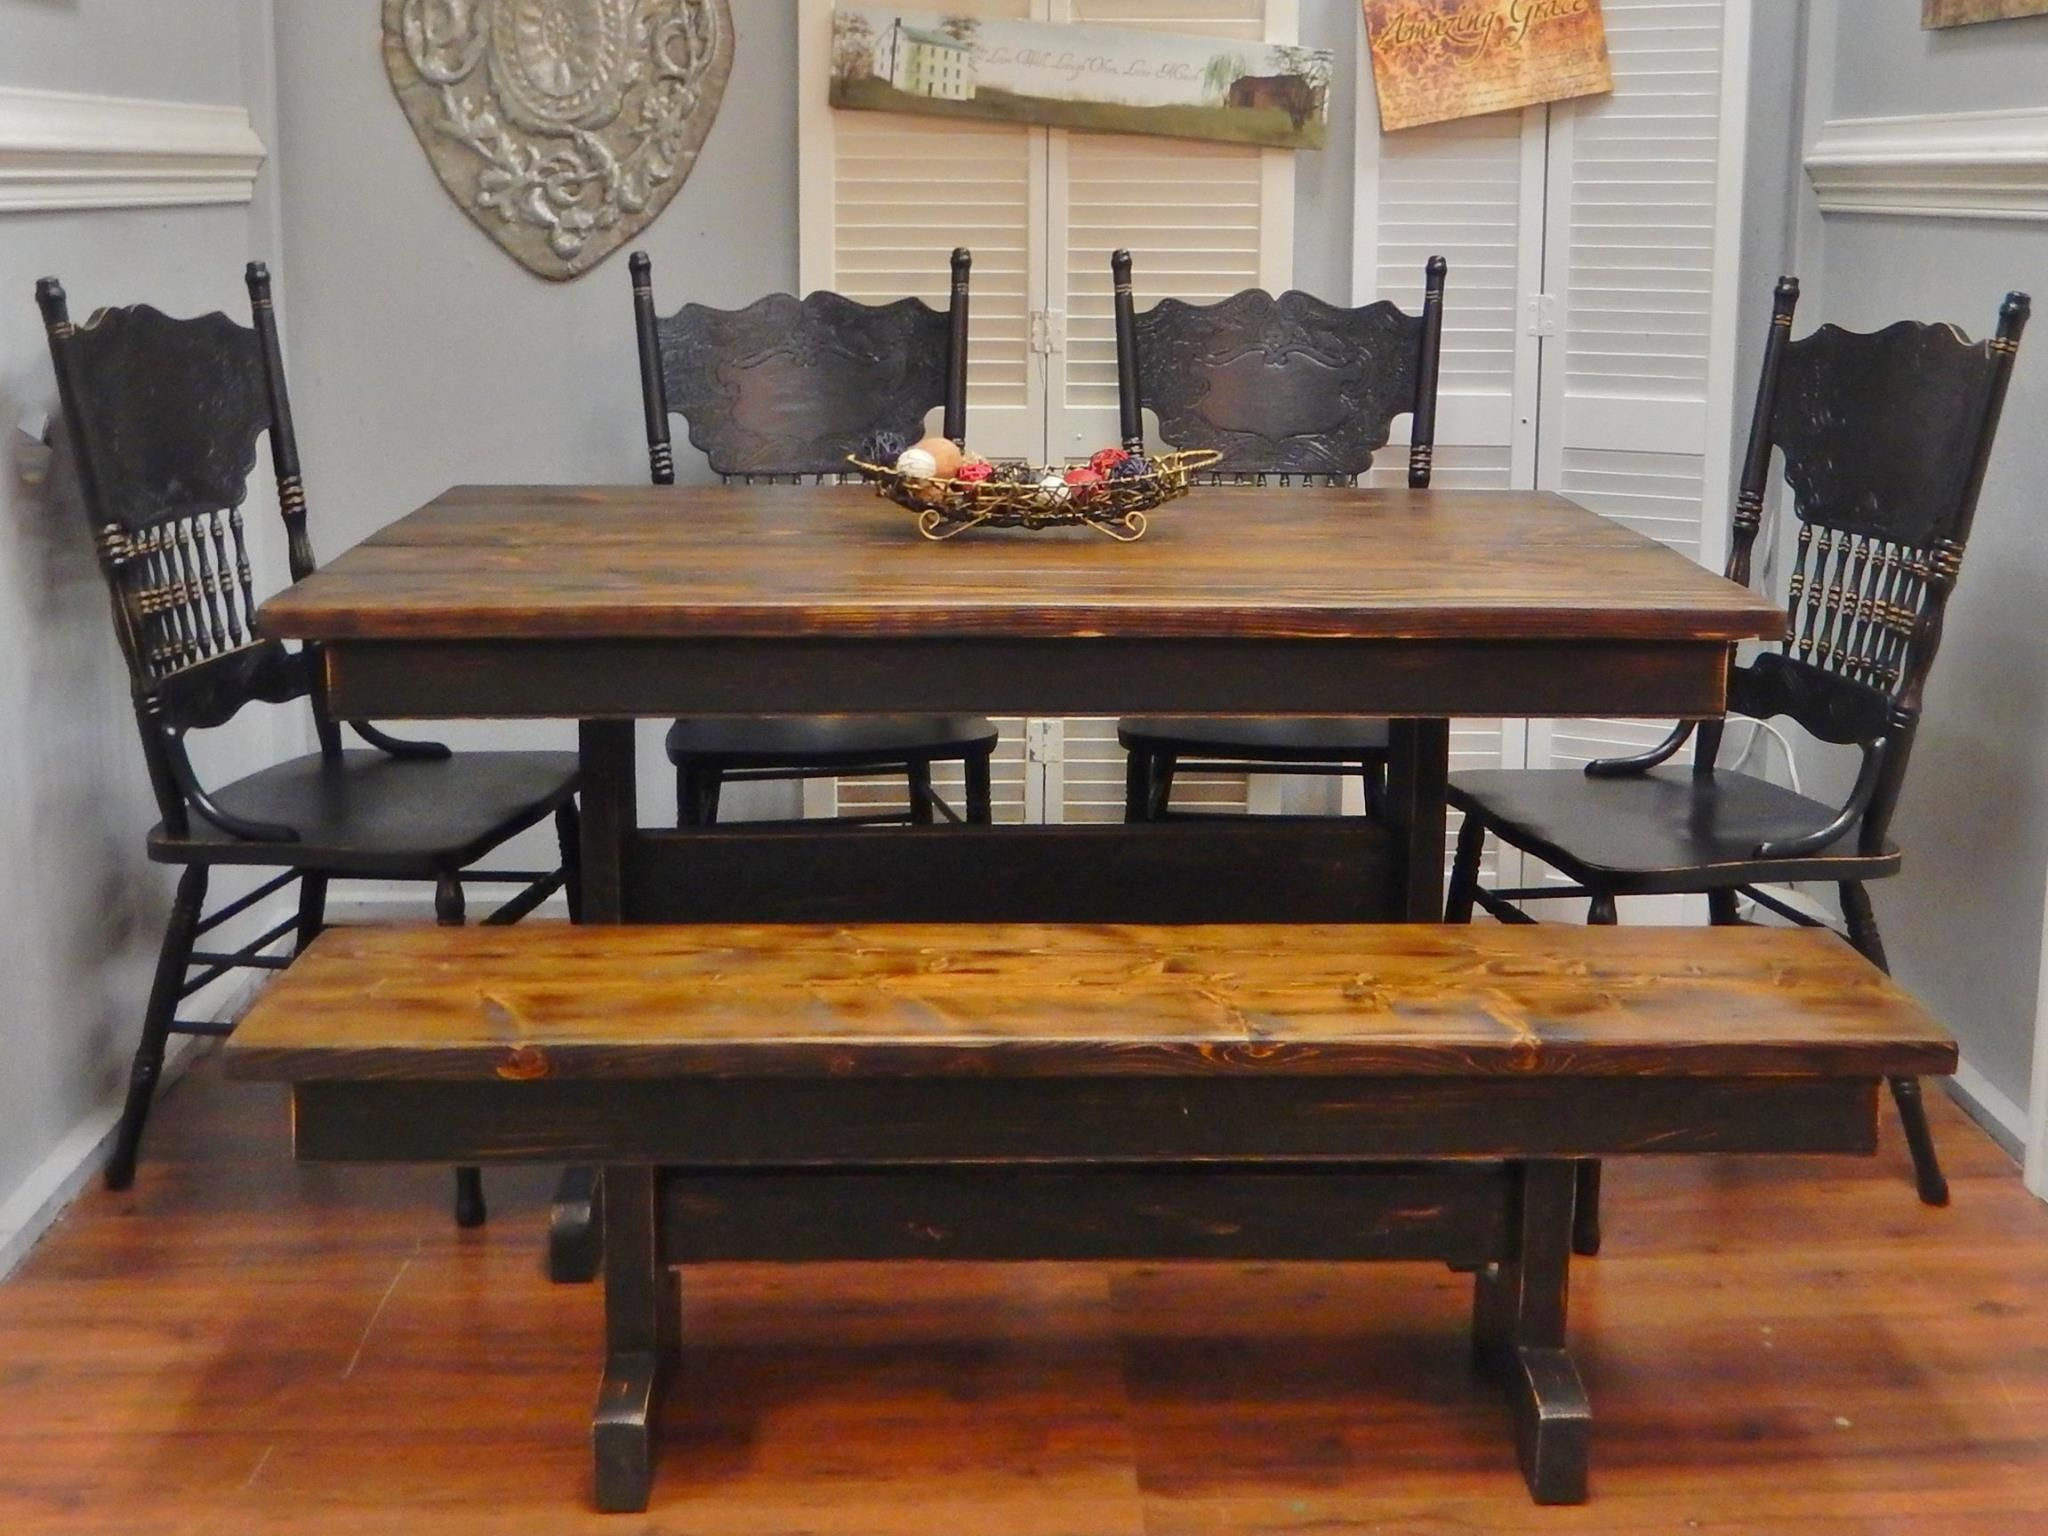 Black Farmhouse Table With Bench Charming Handcrafted Trestle Farm Table Black With